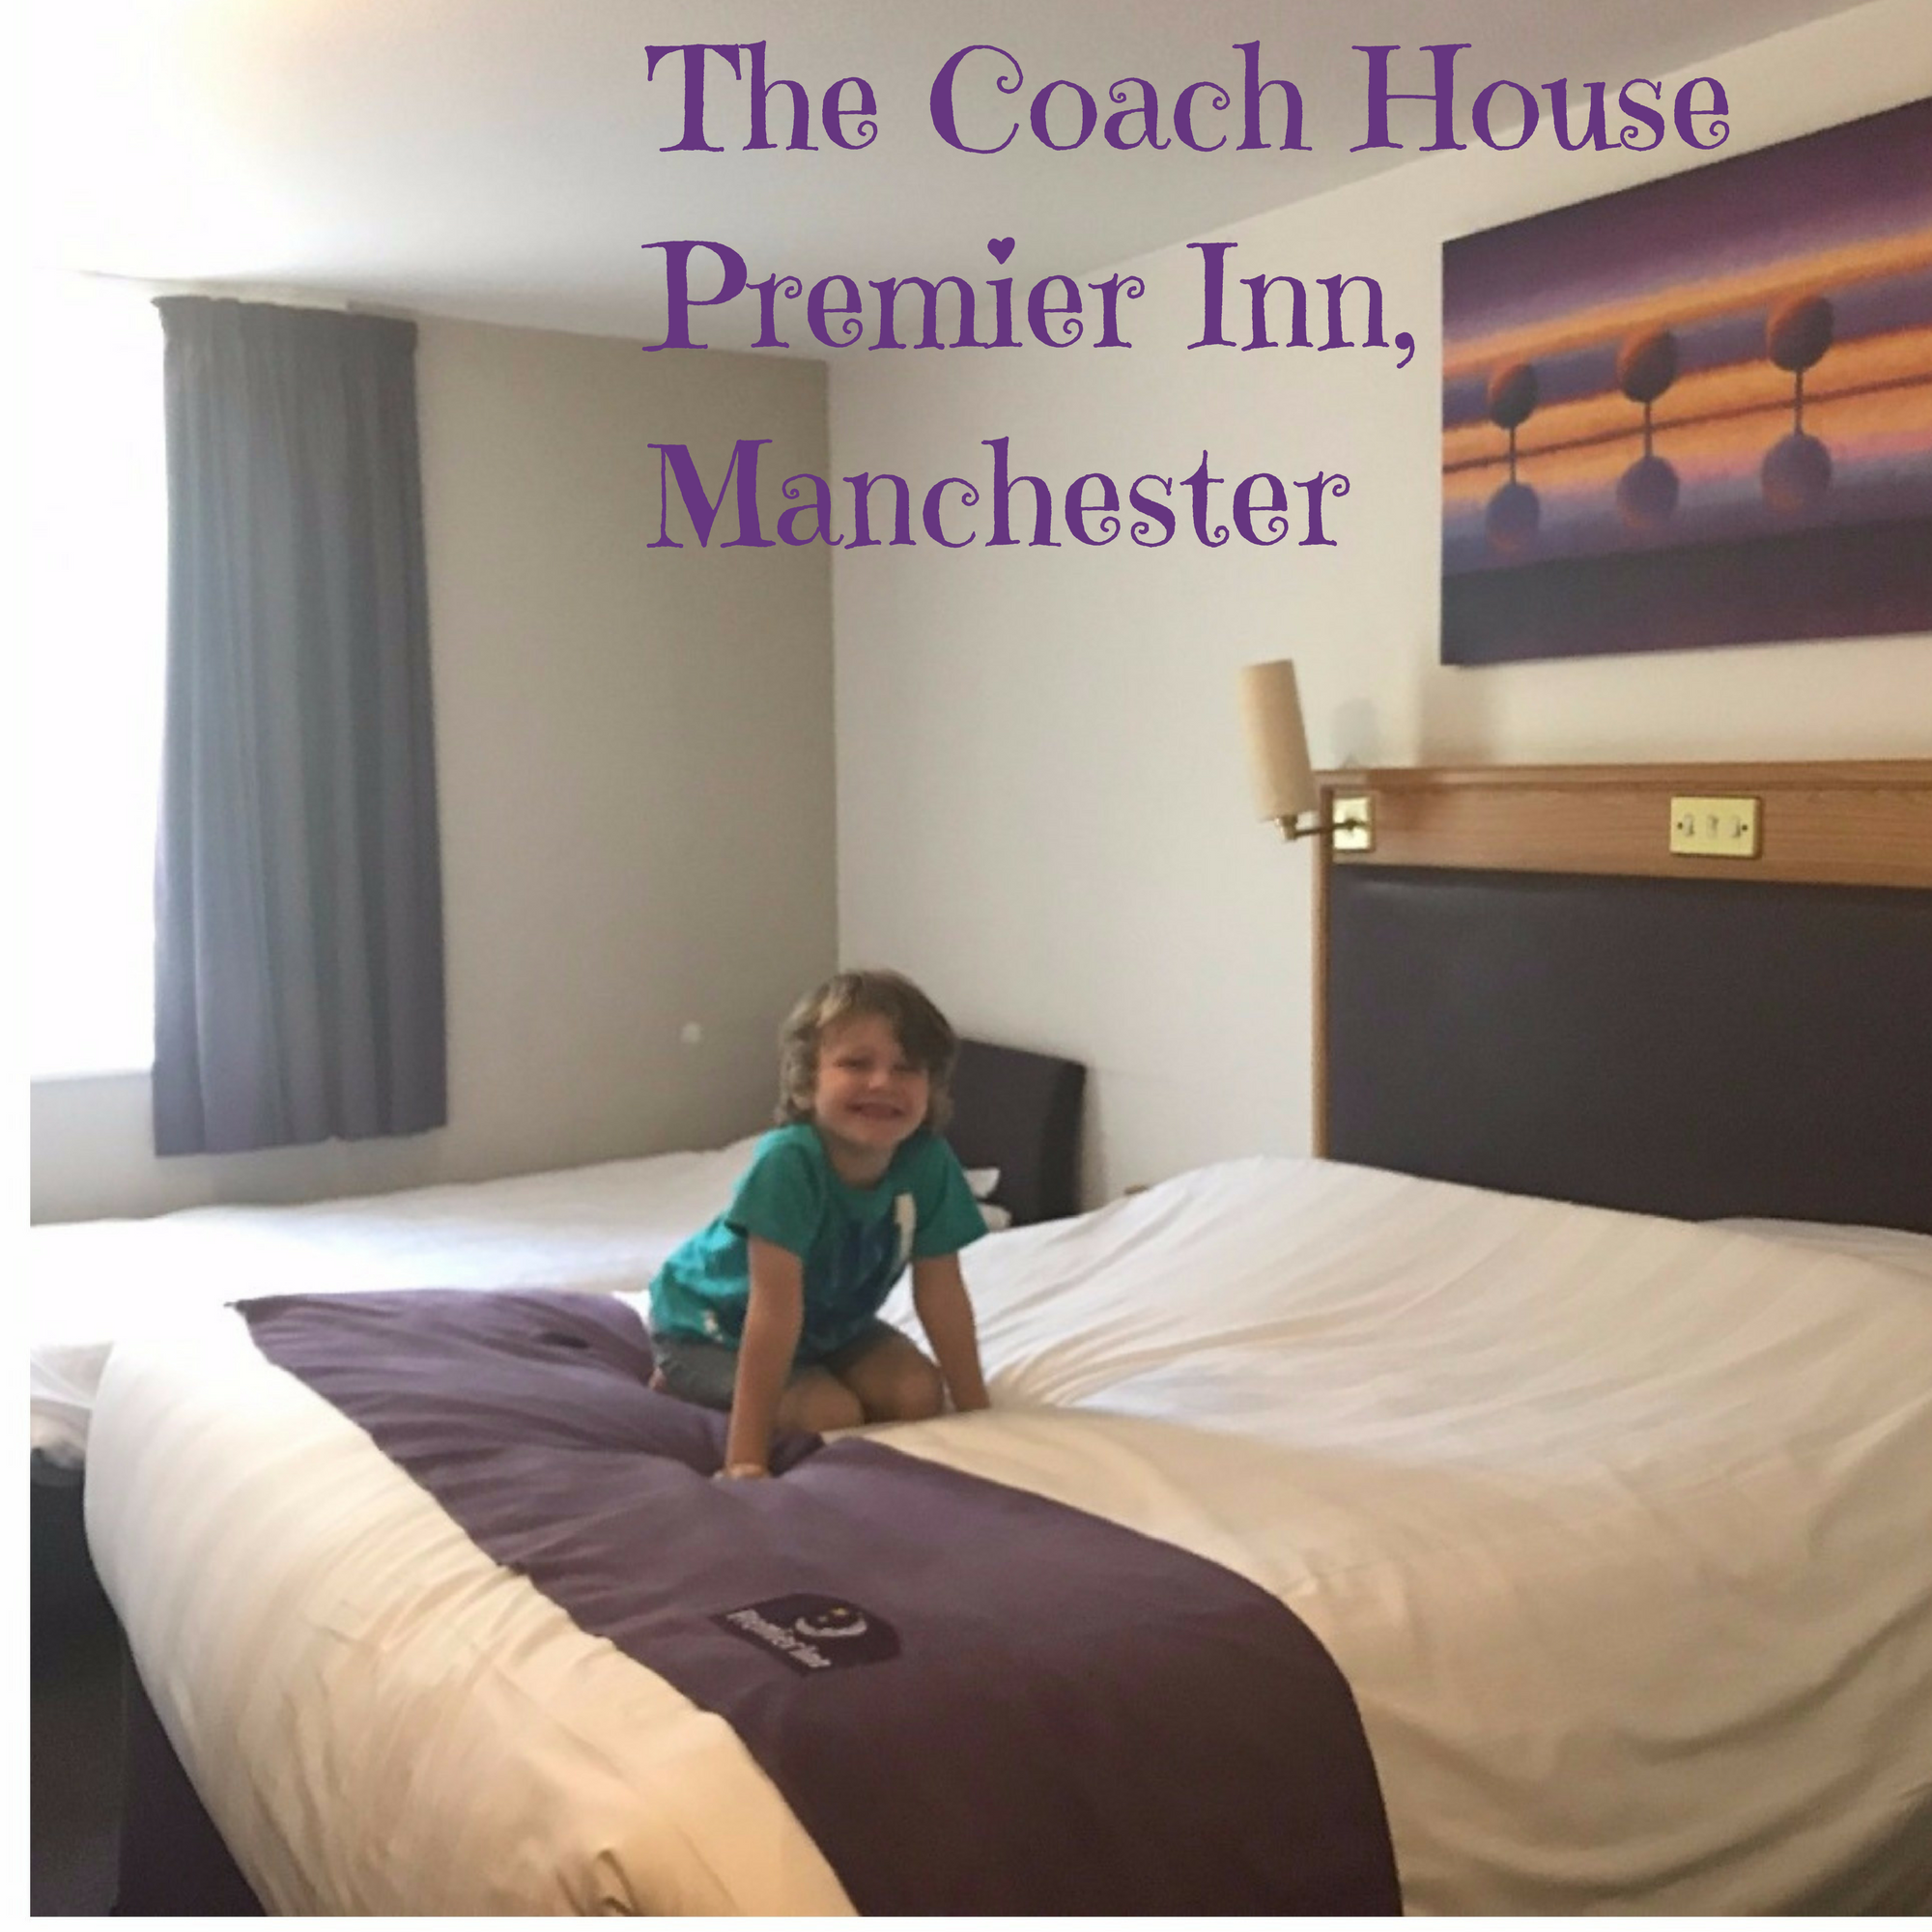 The Coach House Premier Inn, Manchester